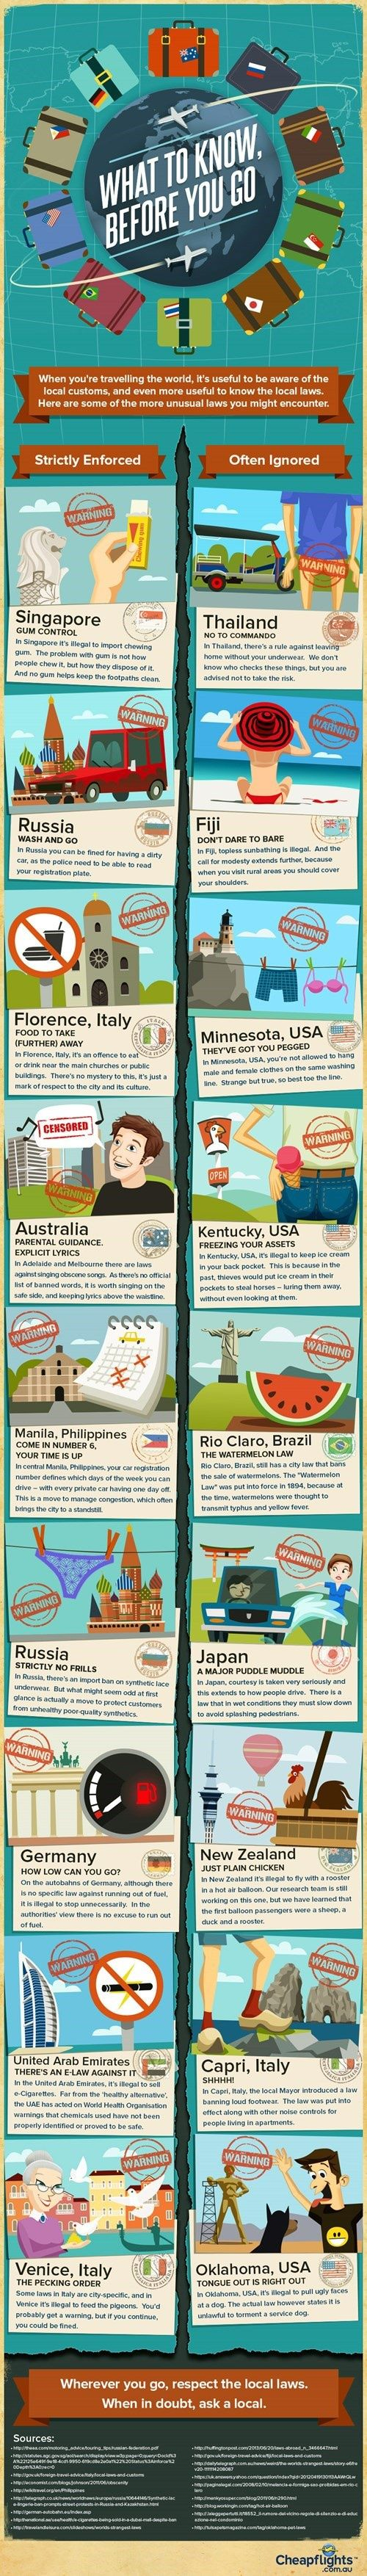 Infographic about Unusual Laws abroad! :)